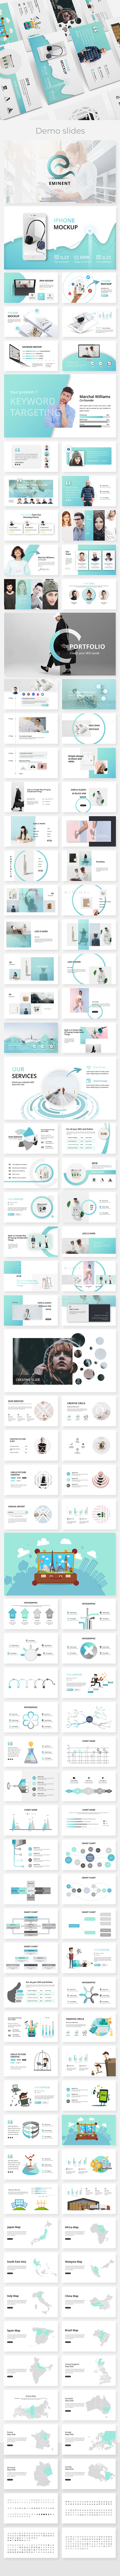 Eminent Creative Powerpoint Template - Creative PowerPoint Templates